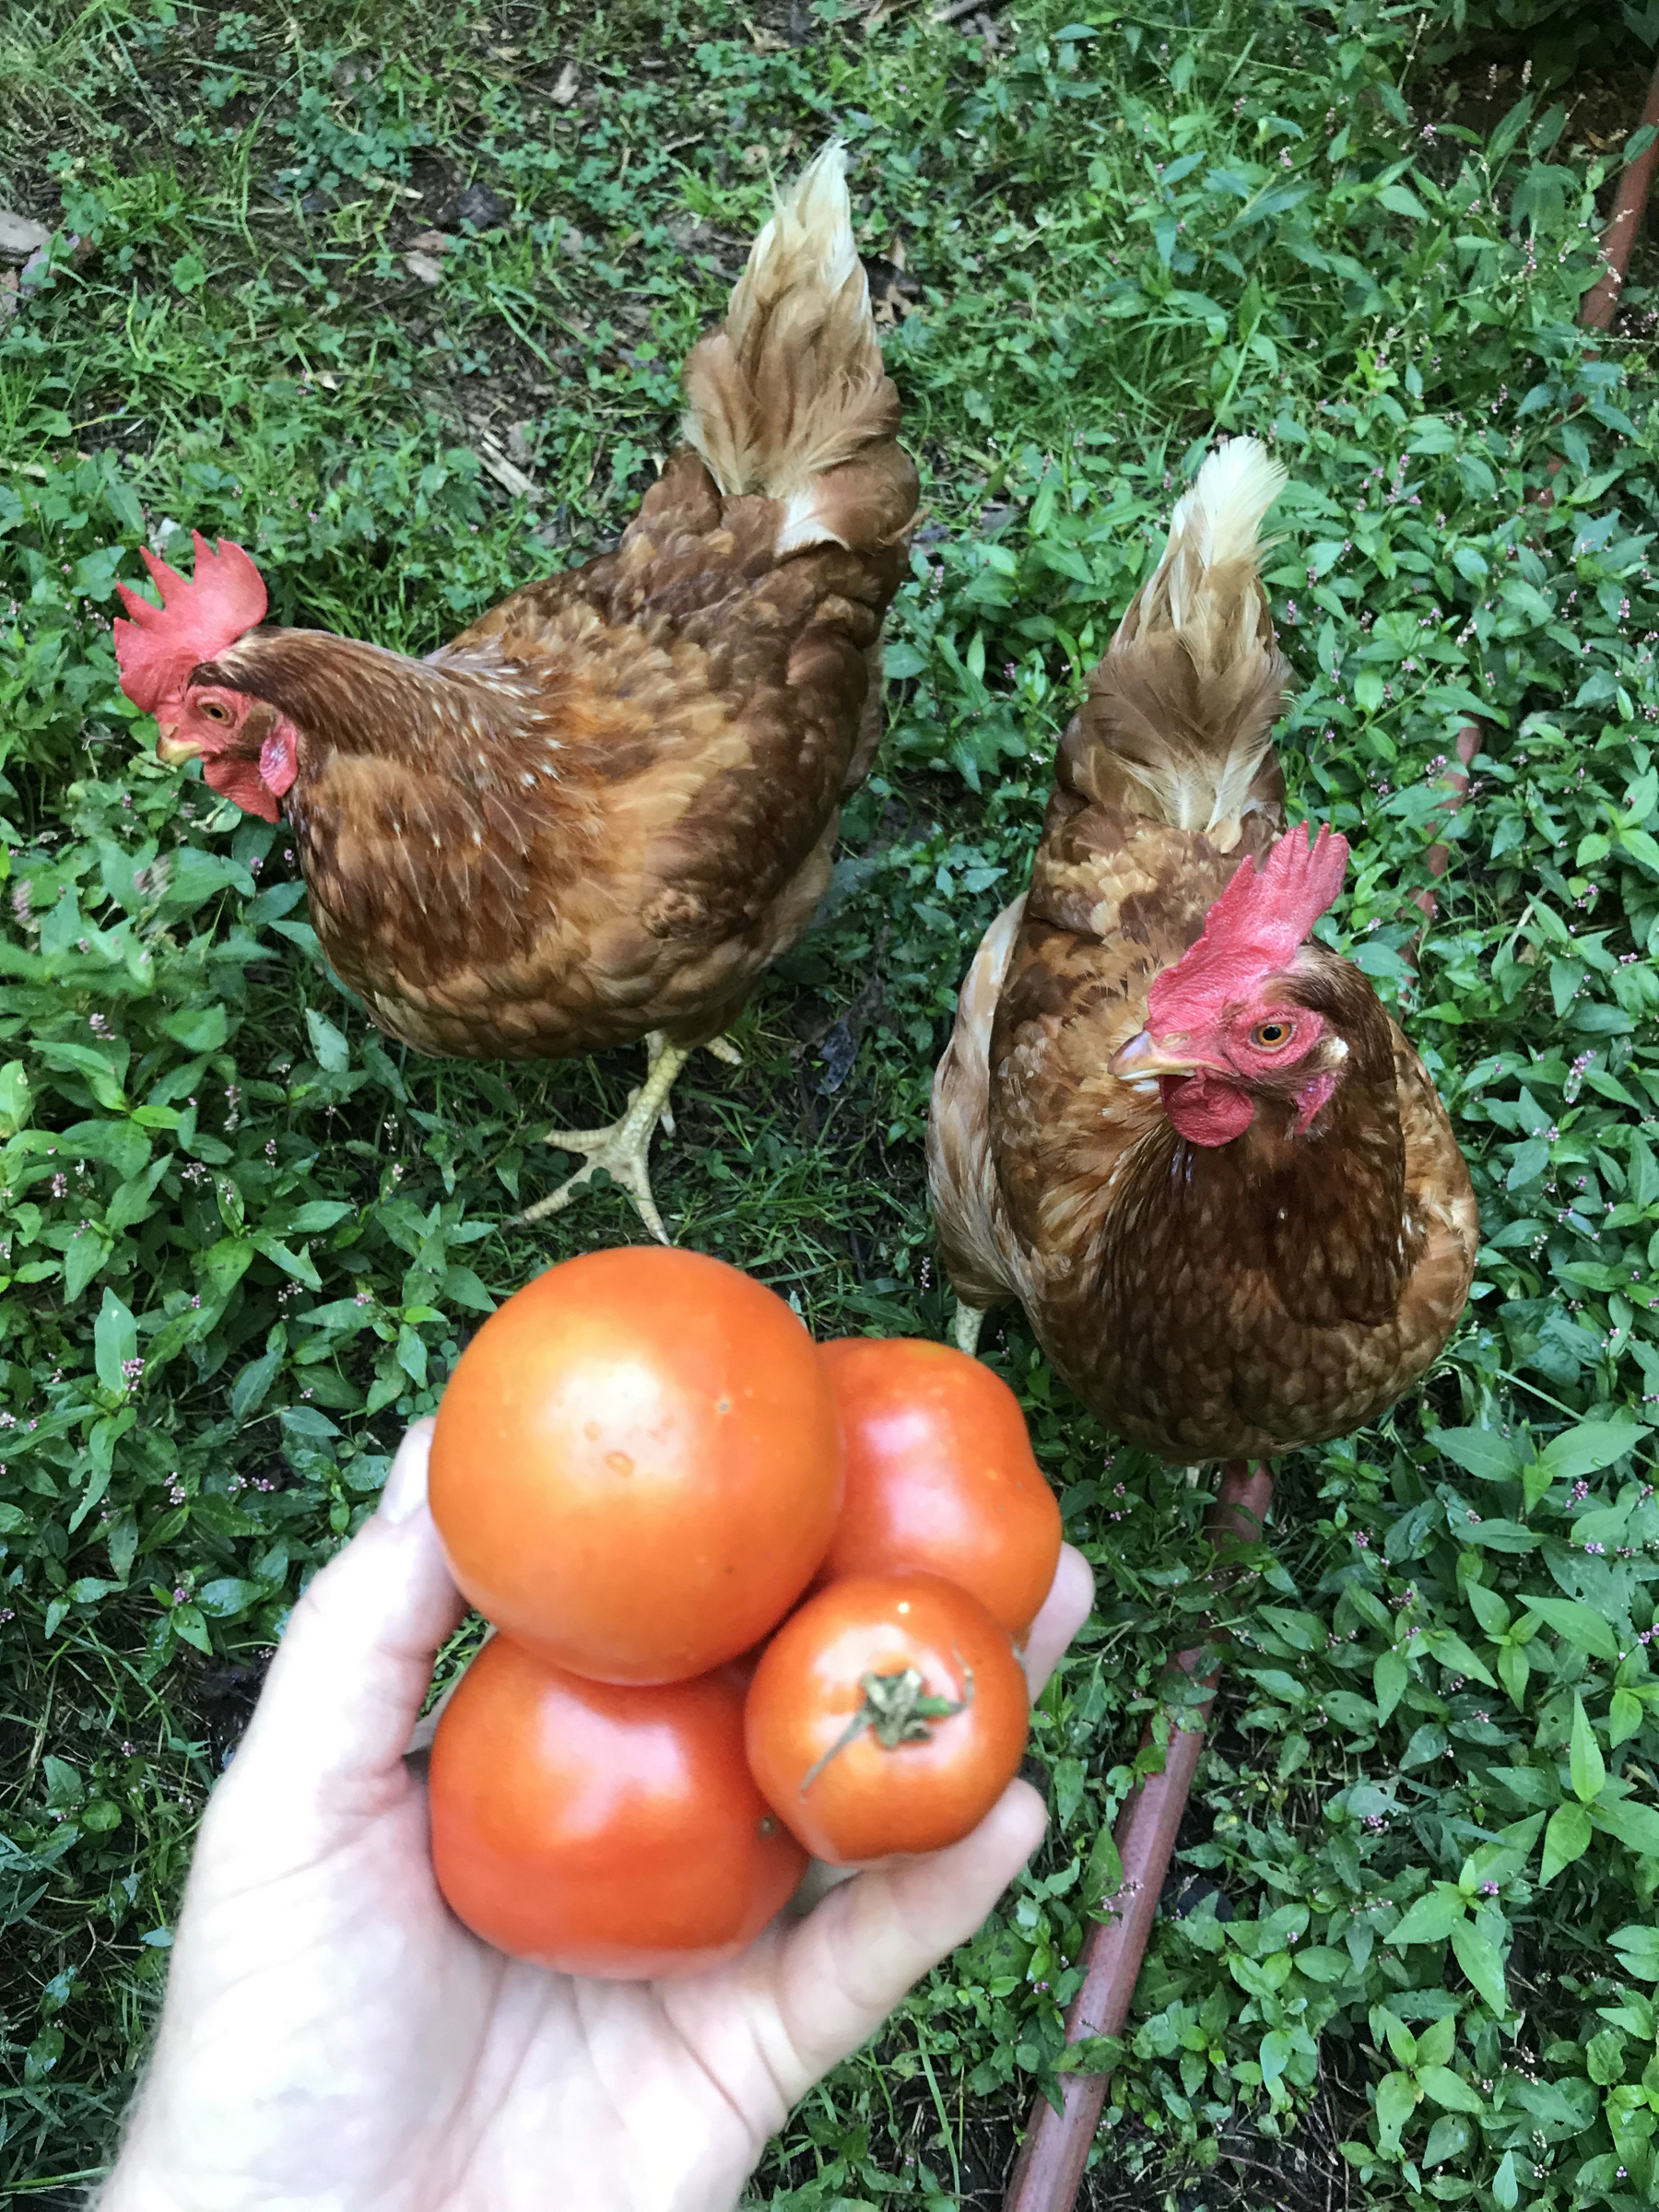 Doug's Ultimate Guide To Growing Your Own Tomatoes